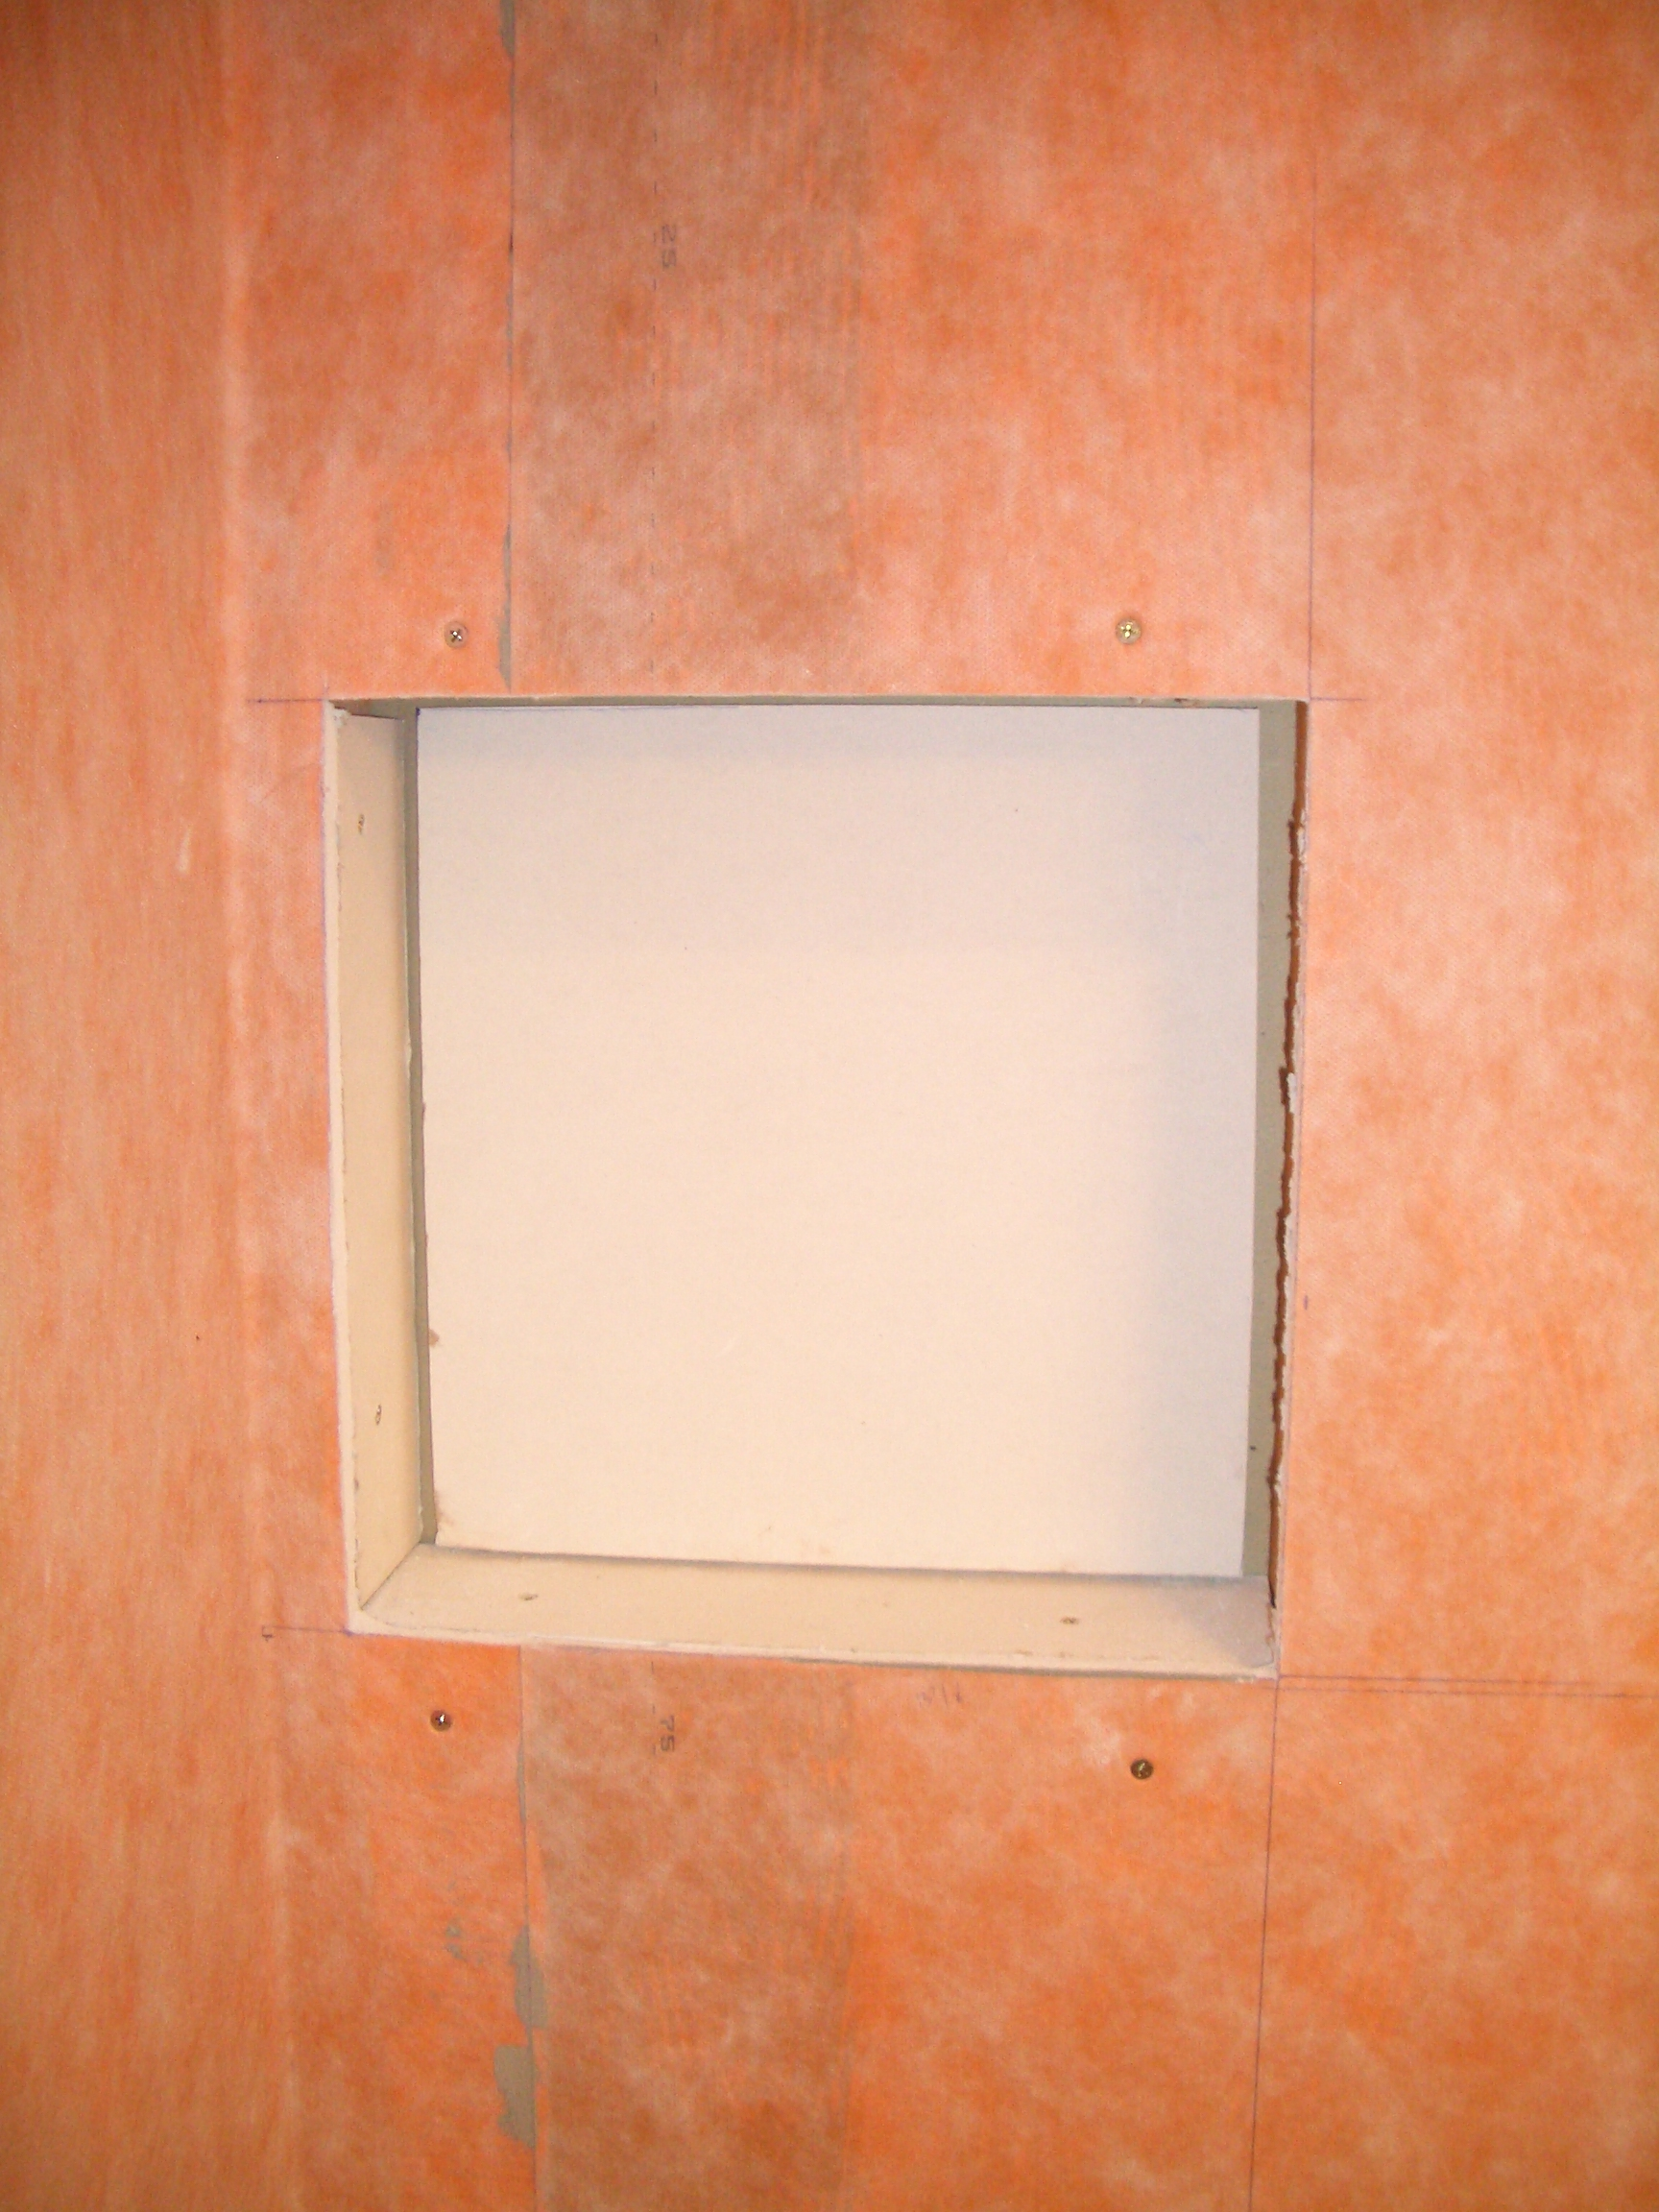 How to build a niche for your shower part 1 installing a filler piece for the back of the niche solutioingenieria Images